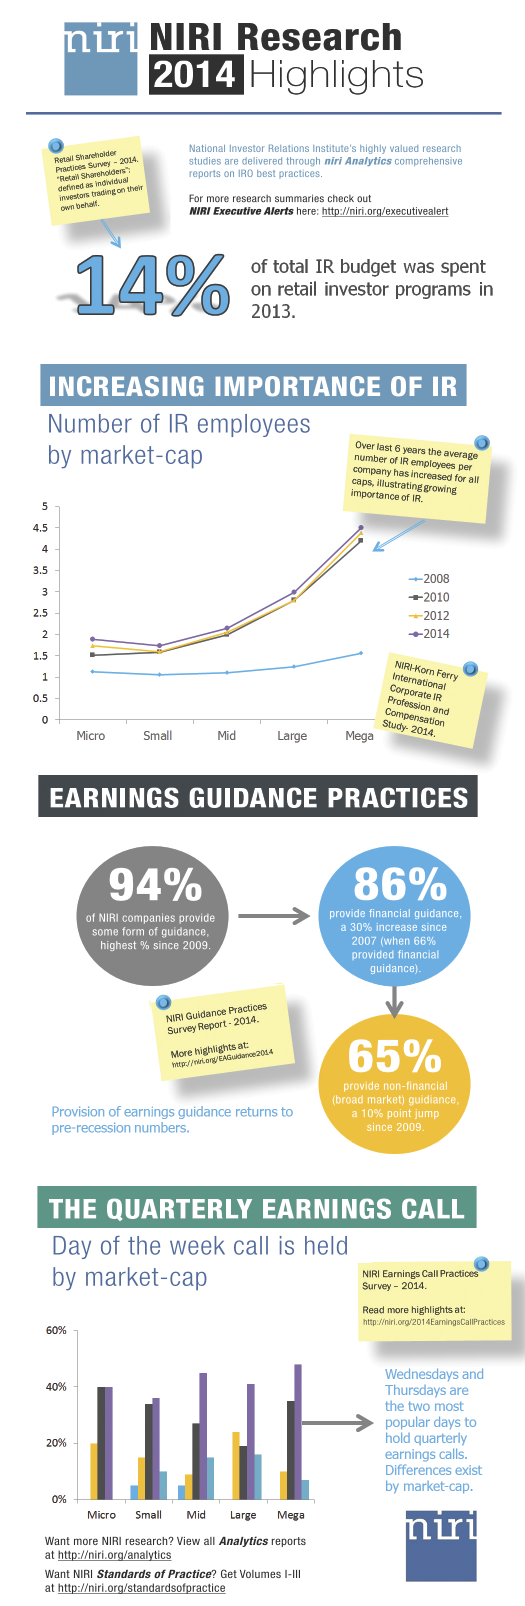 NIRI Infographic 2014 Highlights